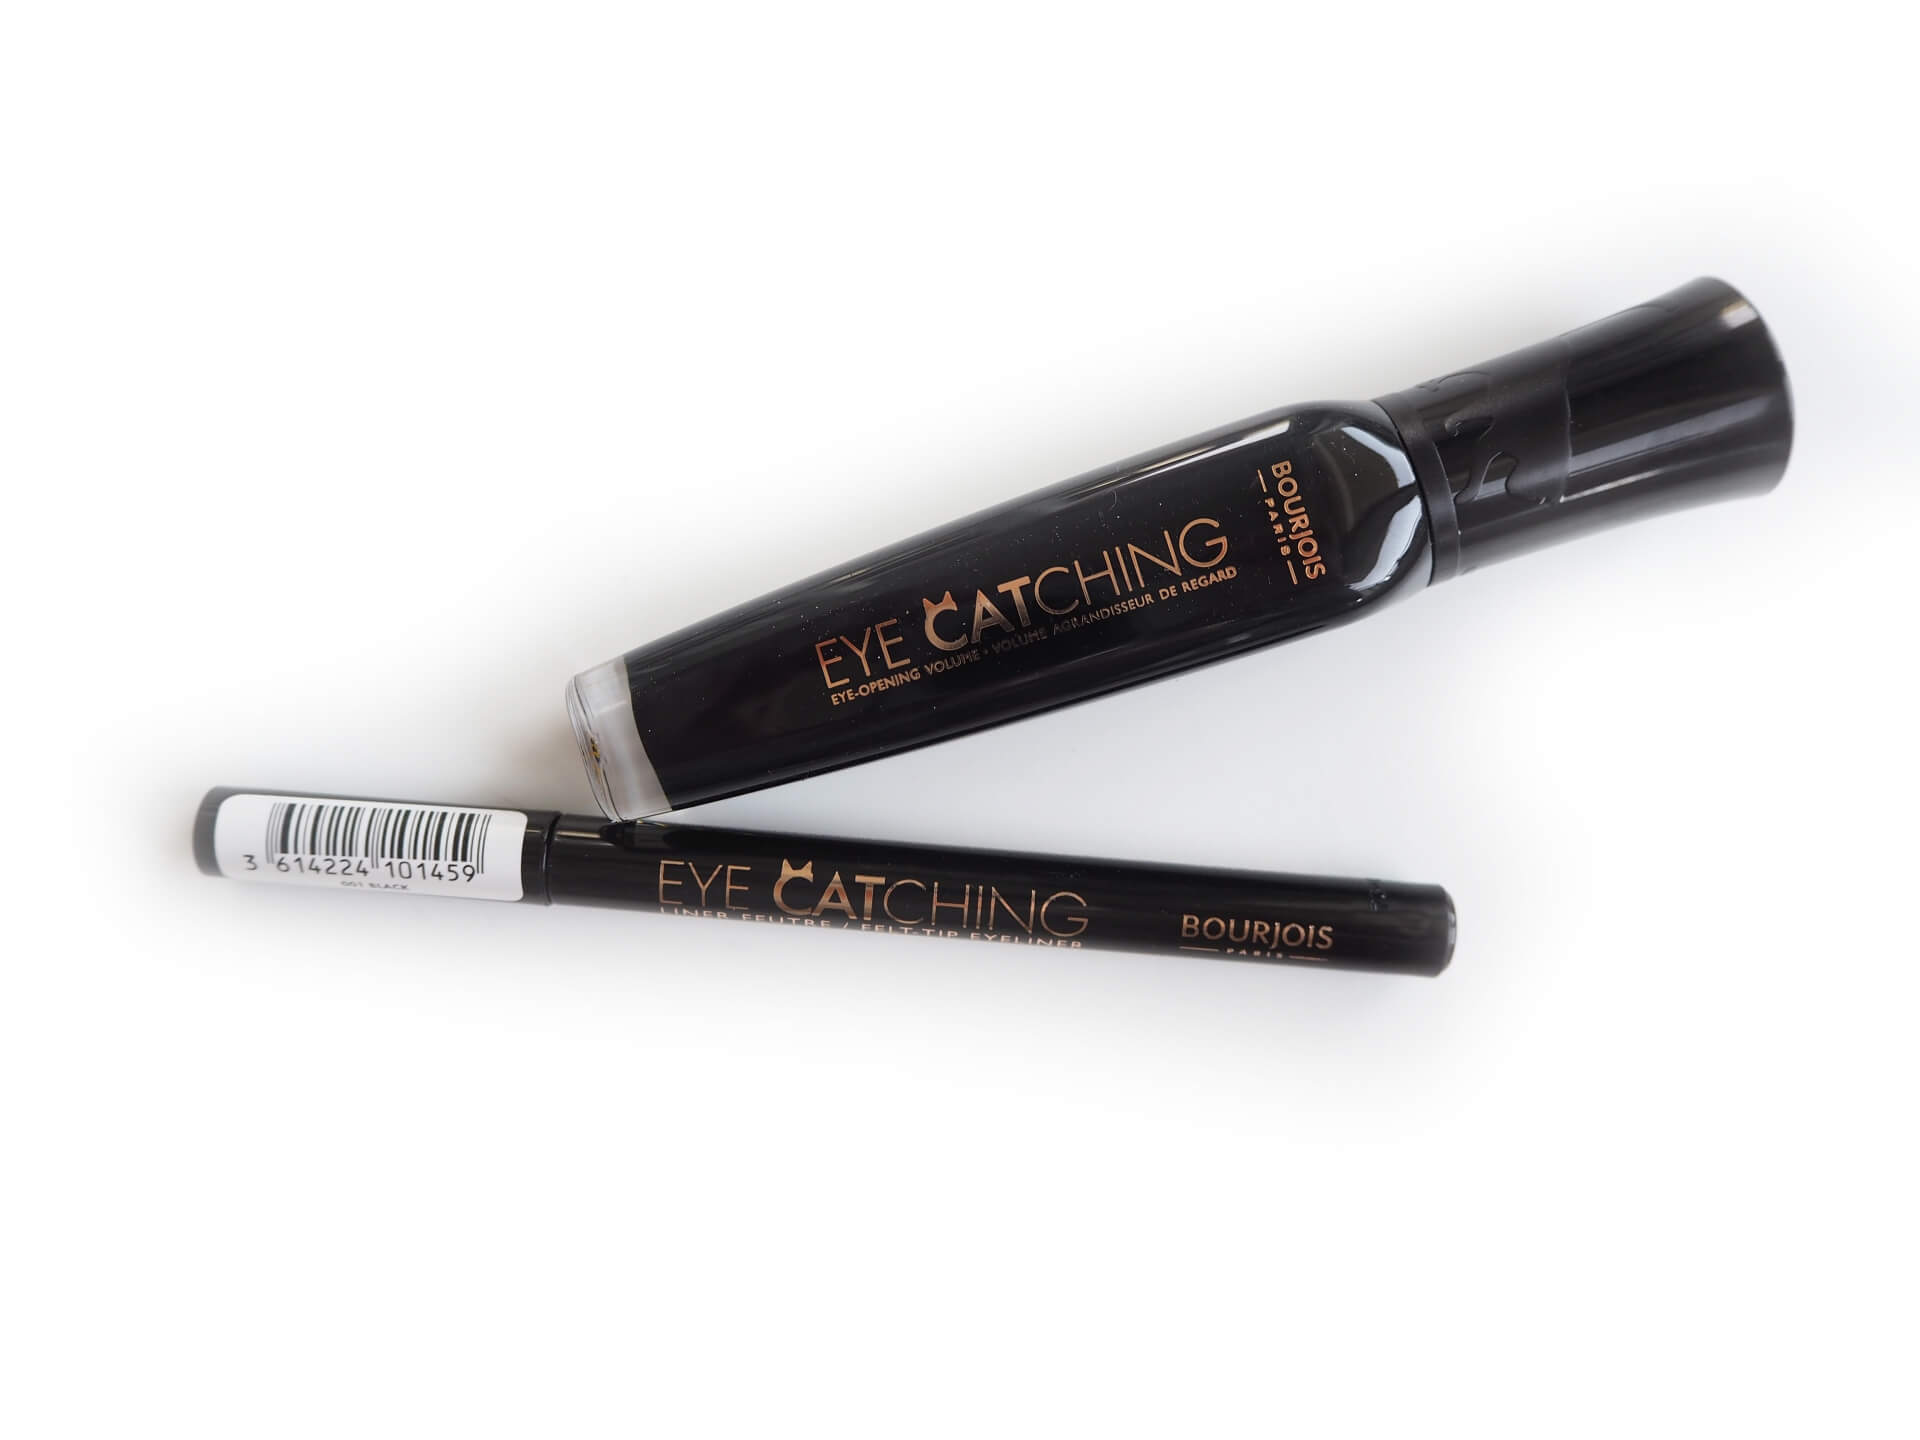 Bourjois EYE CATCHING MASCARA I EYE CATCHING LINER